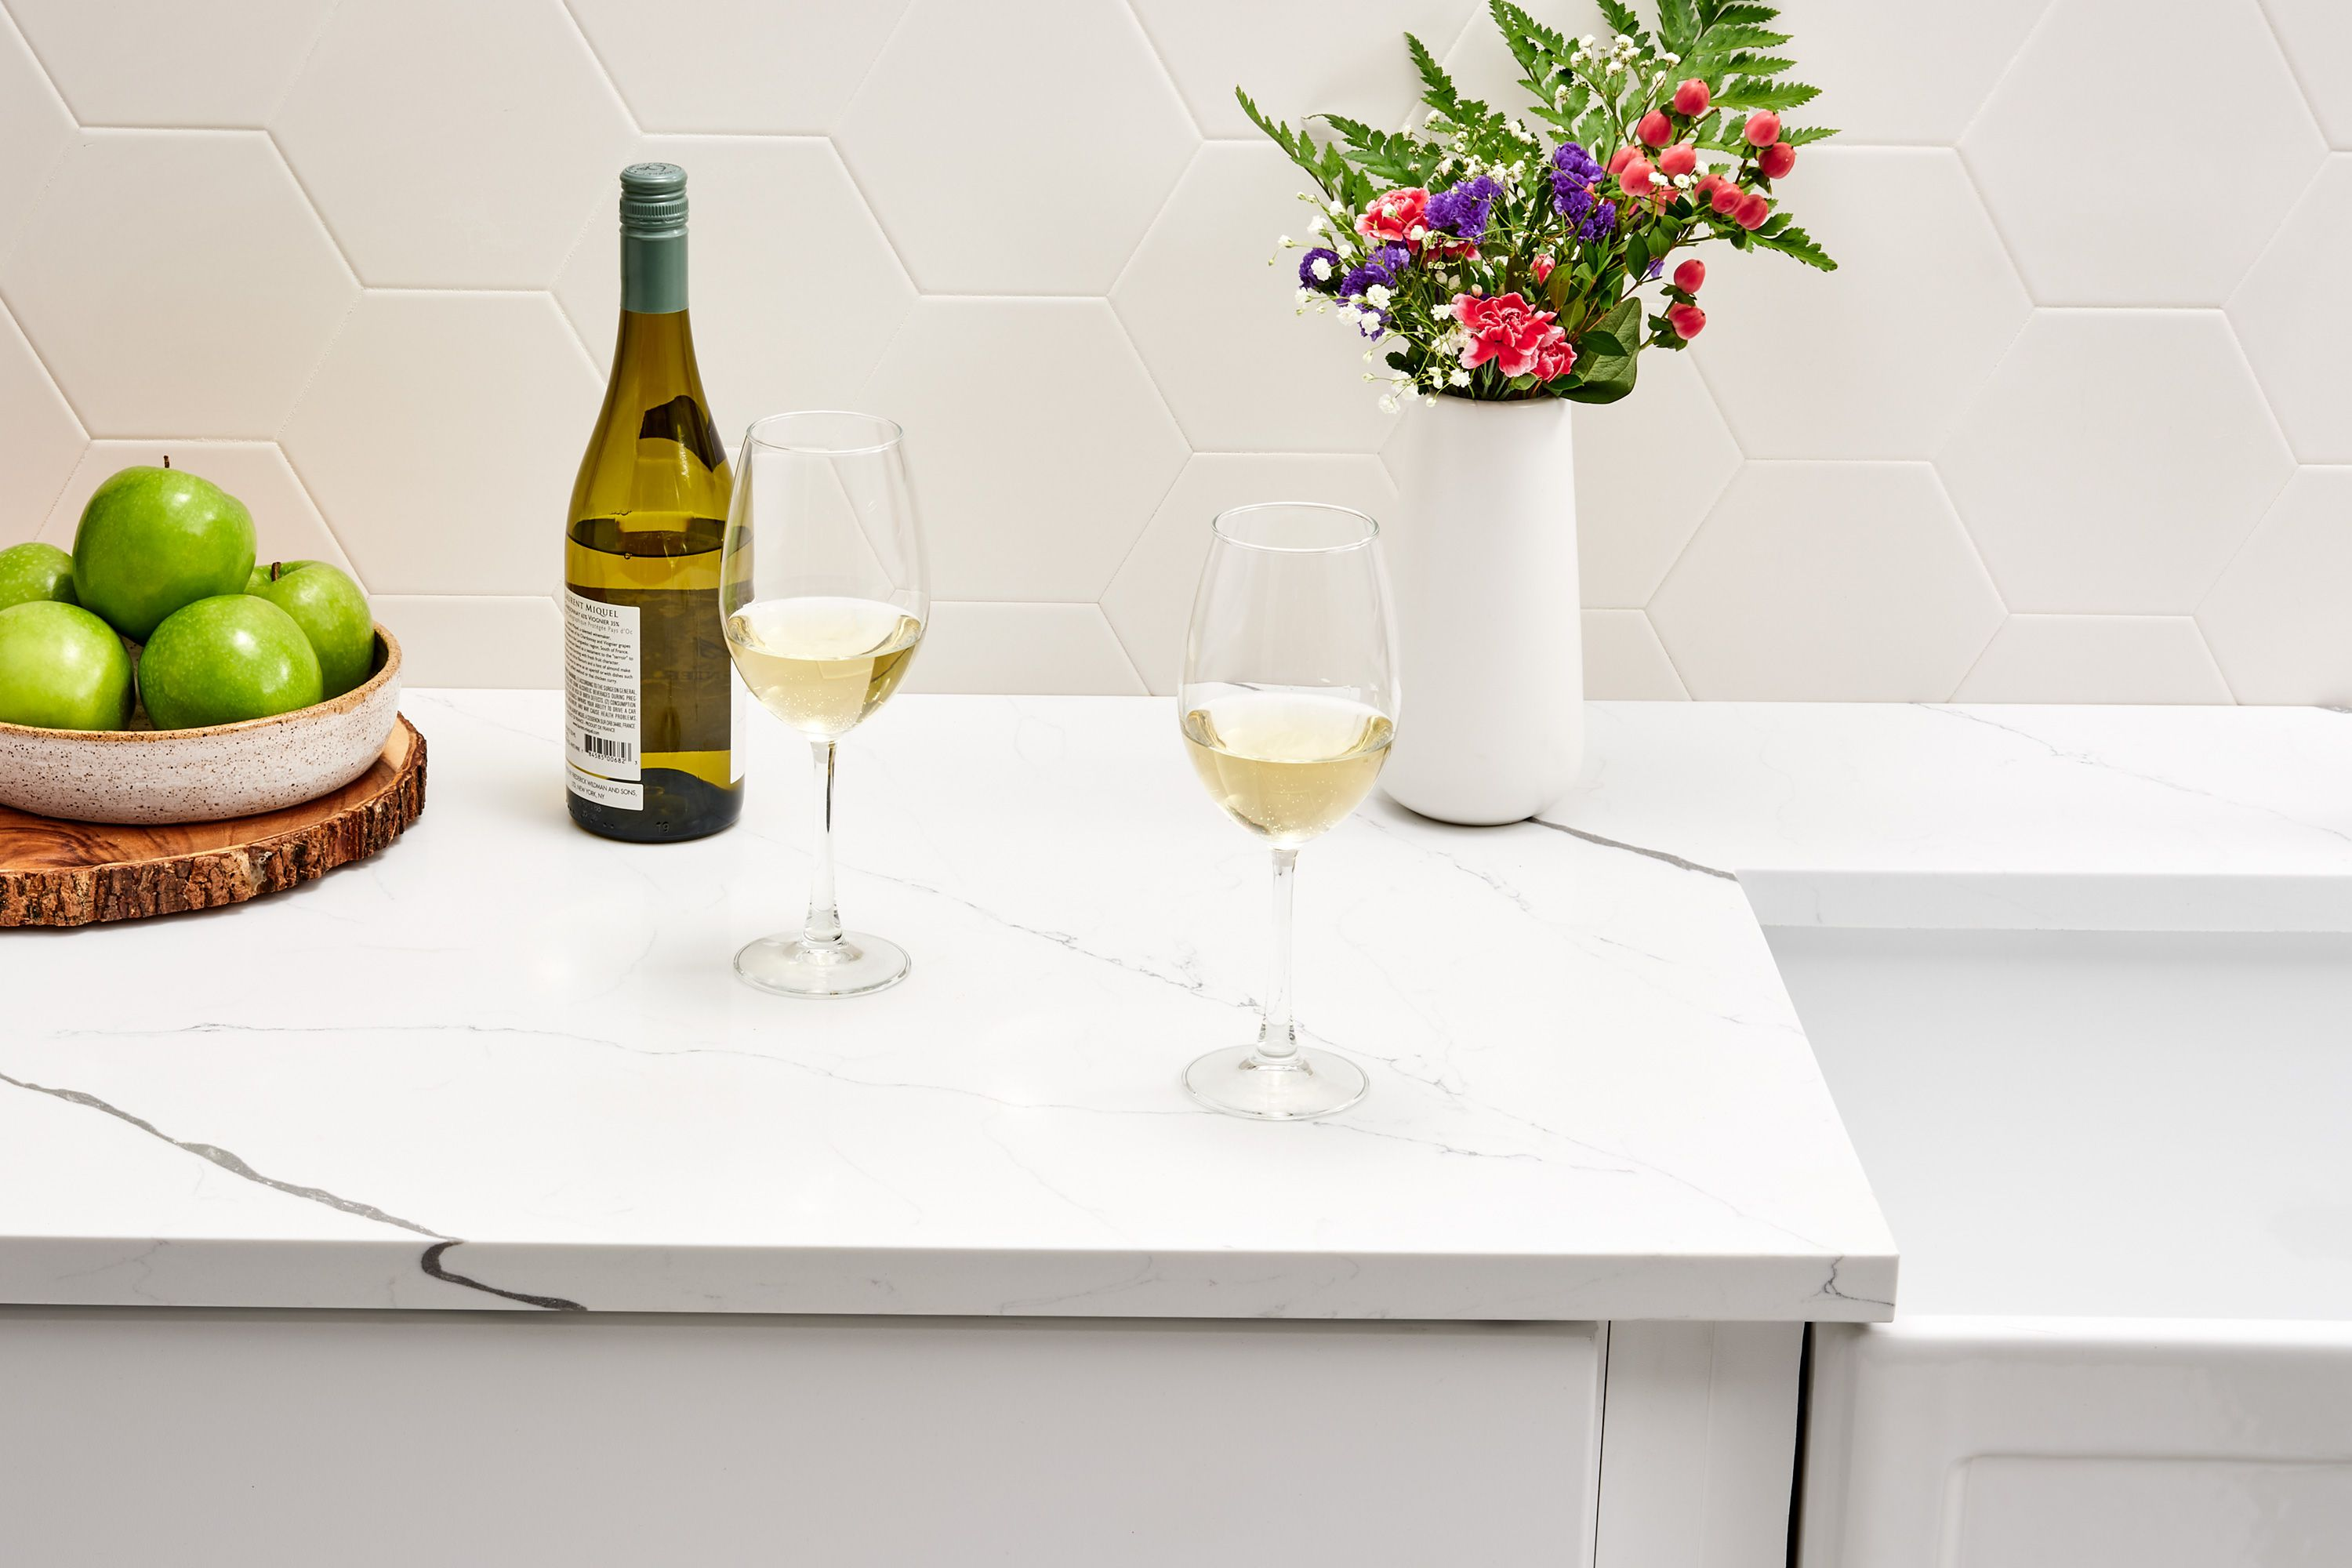 8 Things You Don't Know About Quartz Countertops